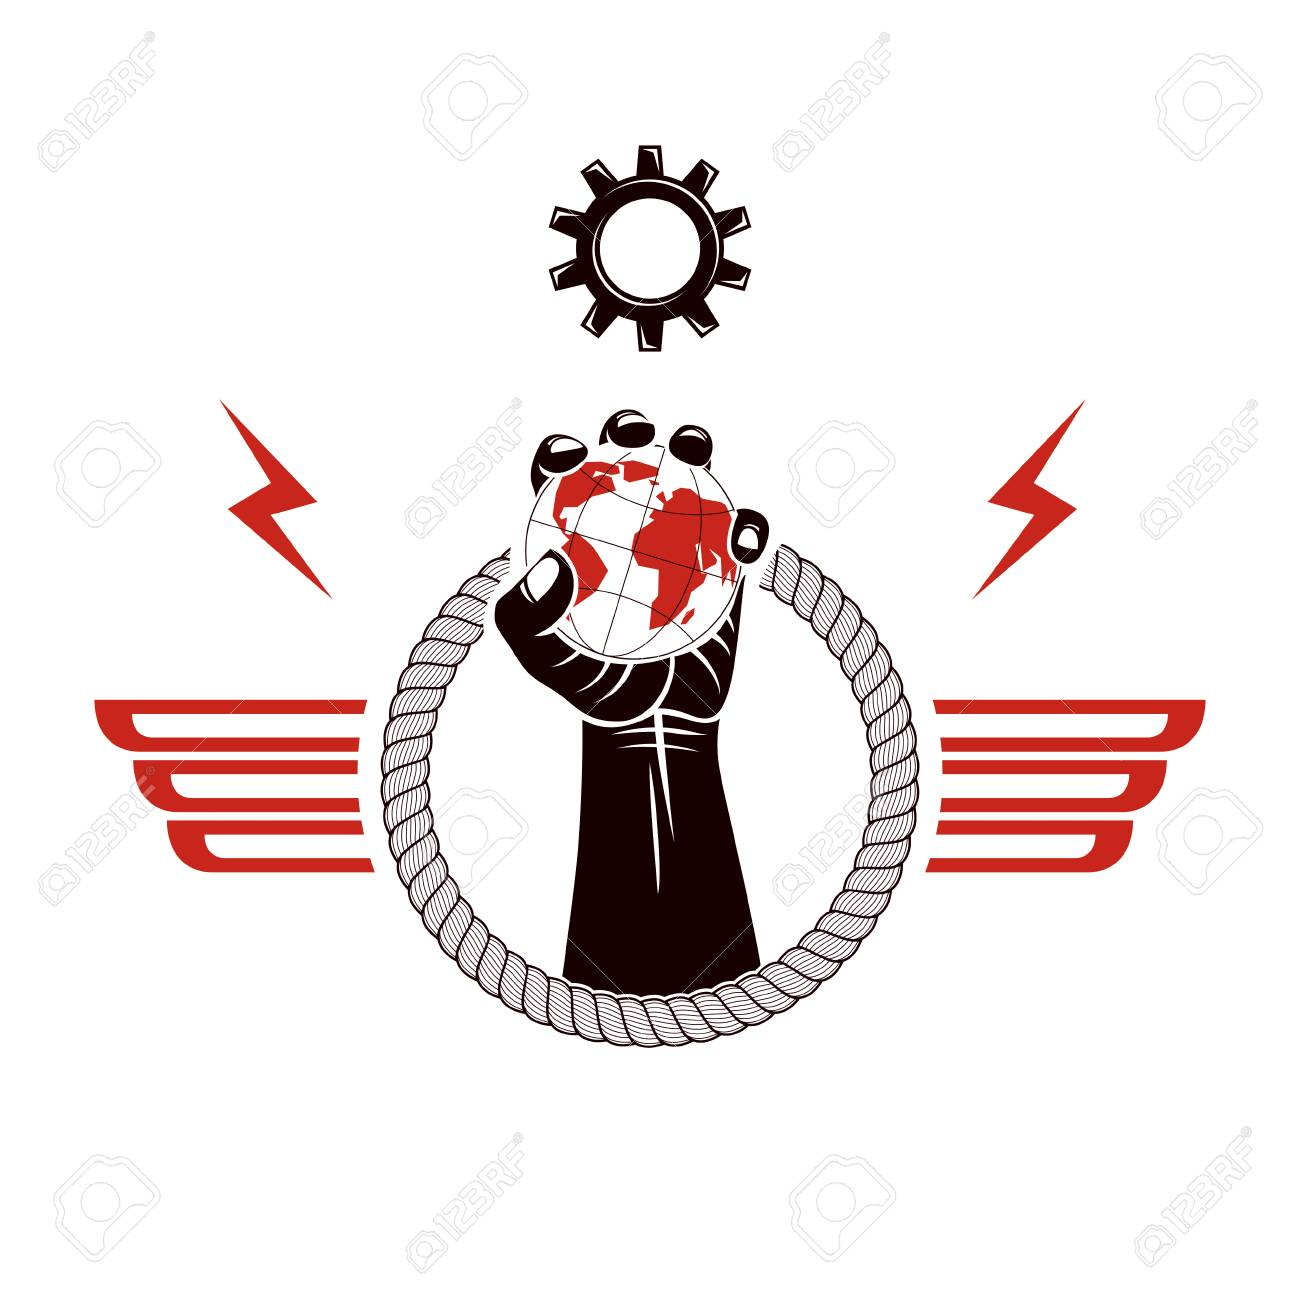 Winged vector emblem composed with raised clenched fist composed with Earth and gearwheel illustration. No limits and restrictions concept. - 104153524